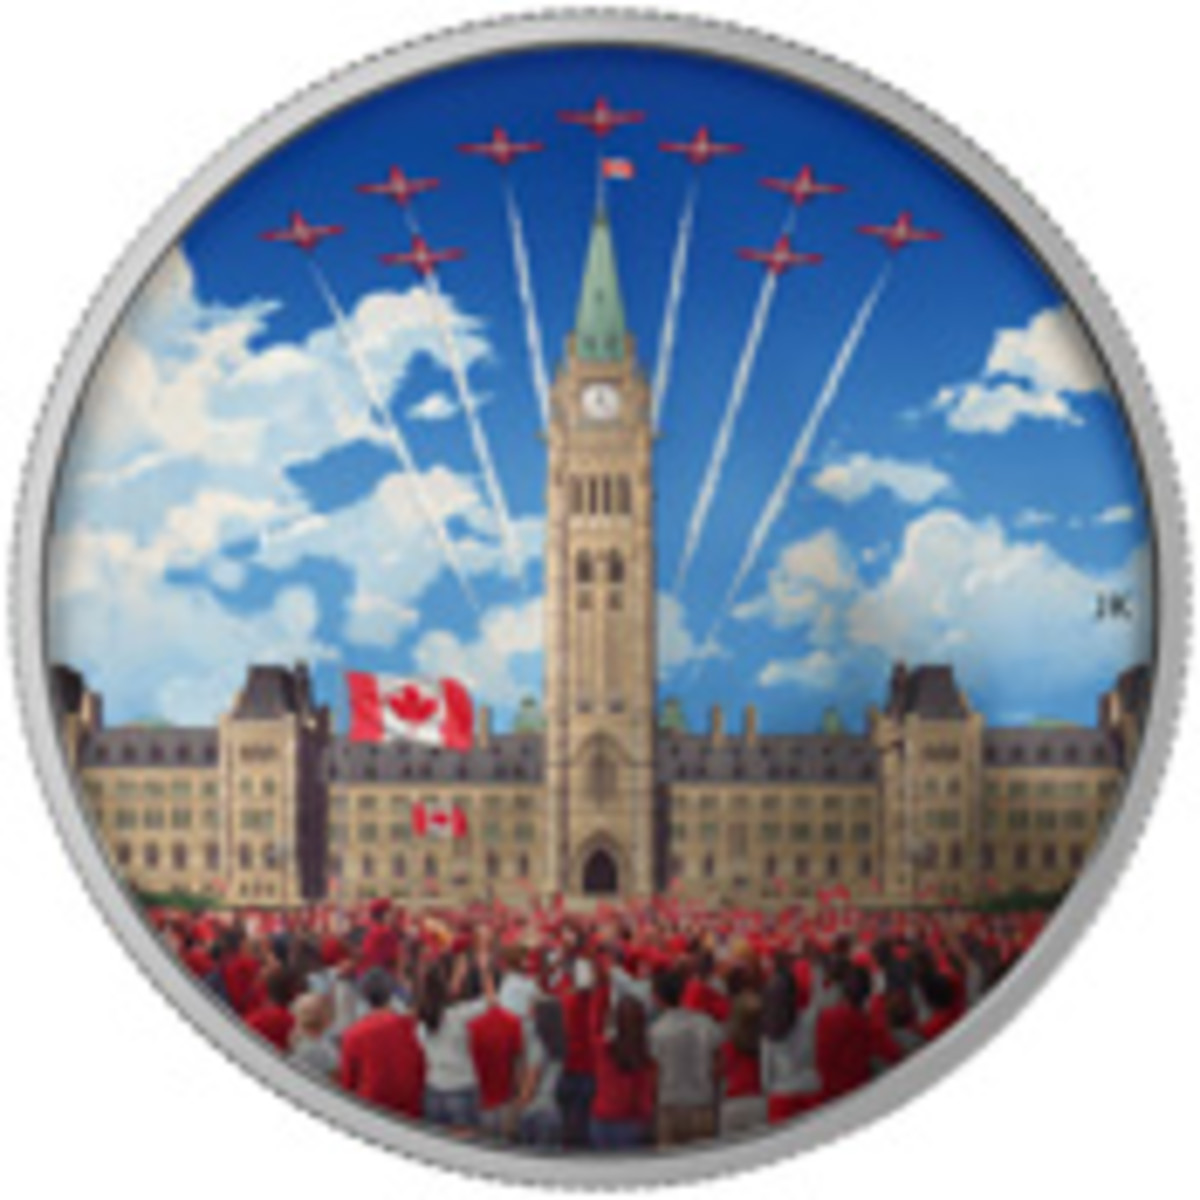 The 54 mm, 62.67 g .9999 fine silver colored $30 issued to mark this year's Canada Day. In daylight the reverse shows the crowd, clad in red and white naturally, celebrating on Parliament Hill during a fly-past by The Snowbirds. When viewed under a black light (supplied) the scene turns to night to show the grand firework finale.